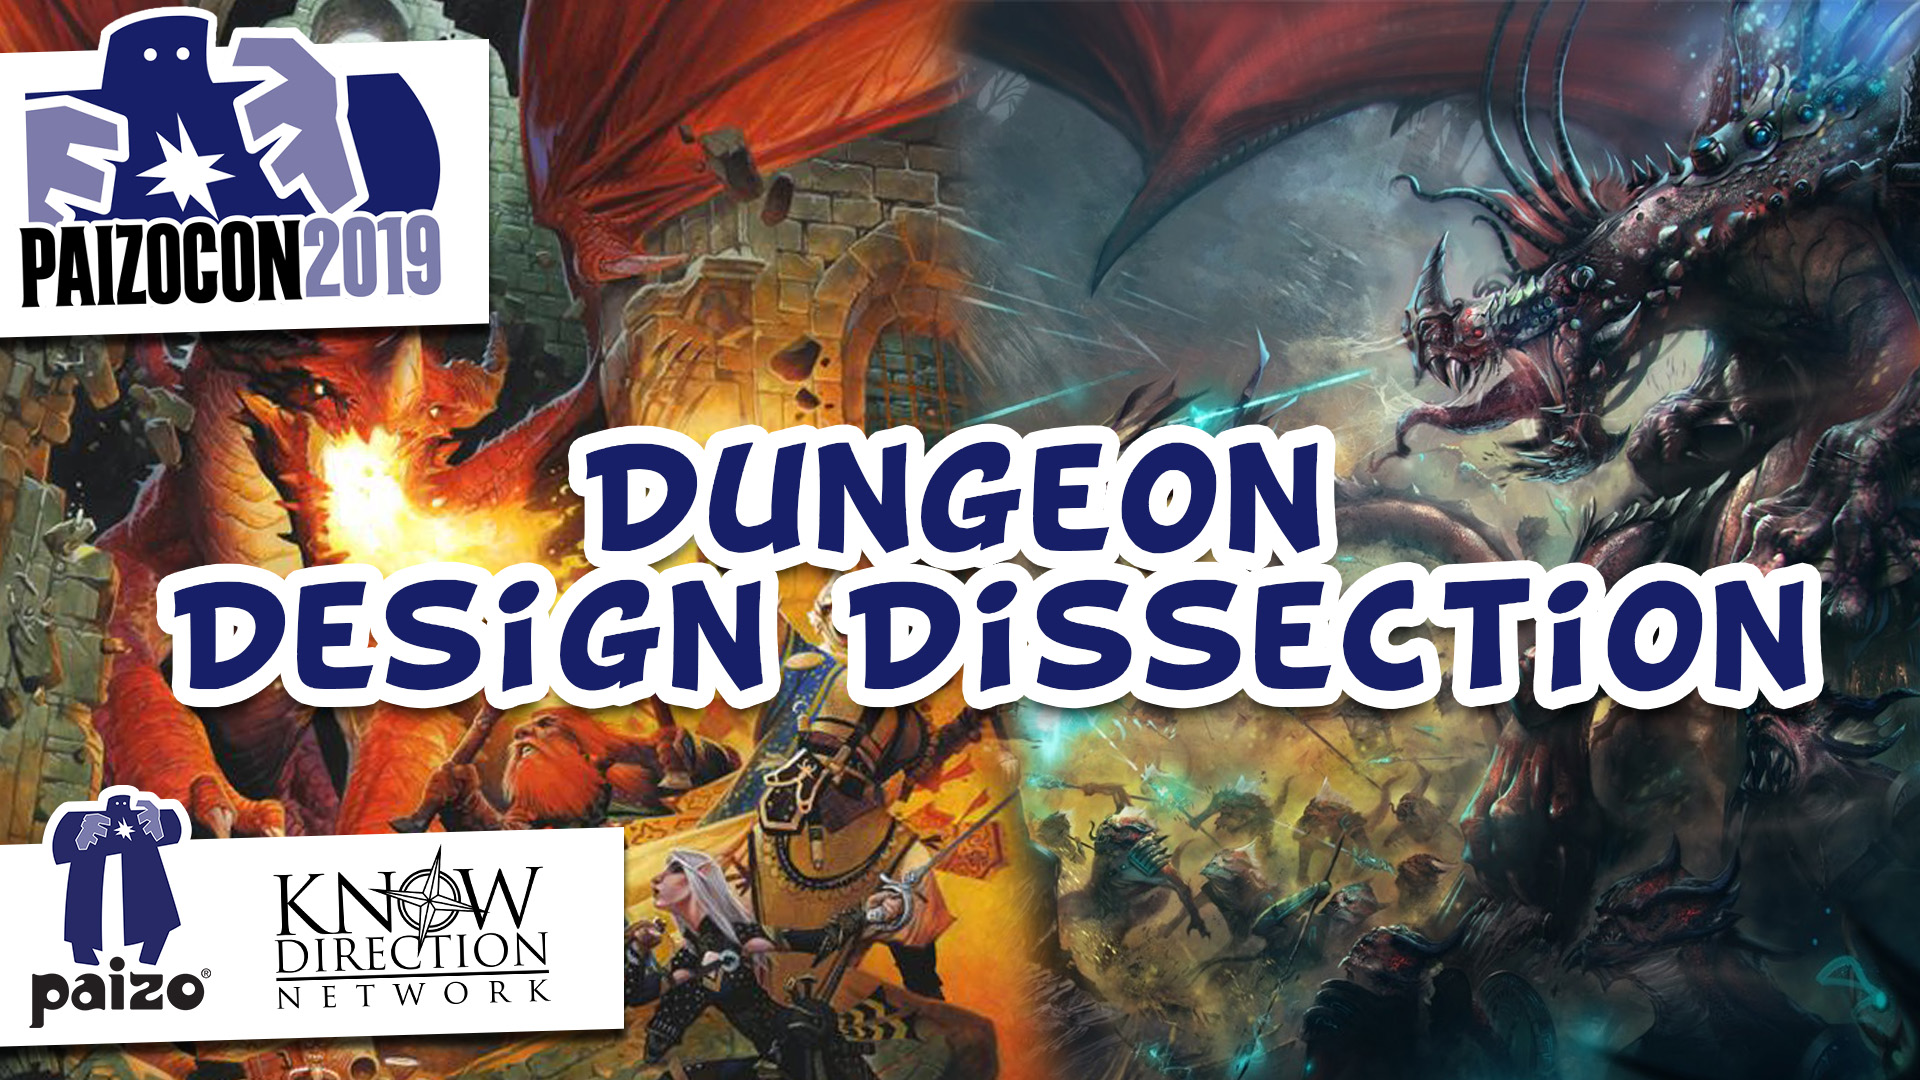 PaizoCon 2019 - Dungeon Design Dissection